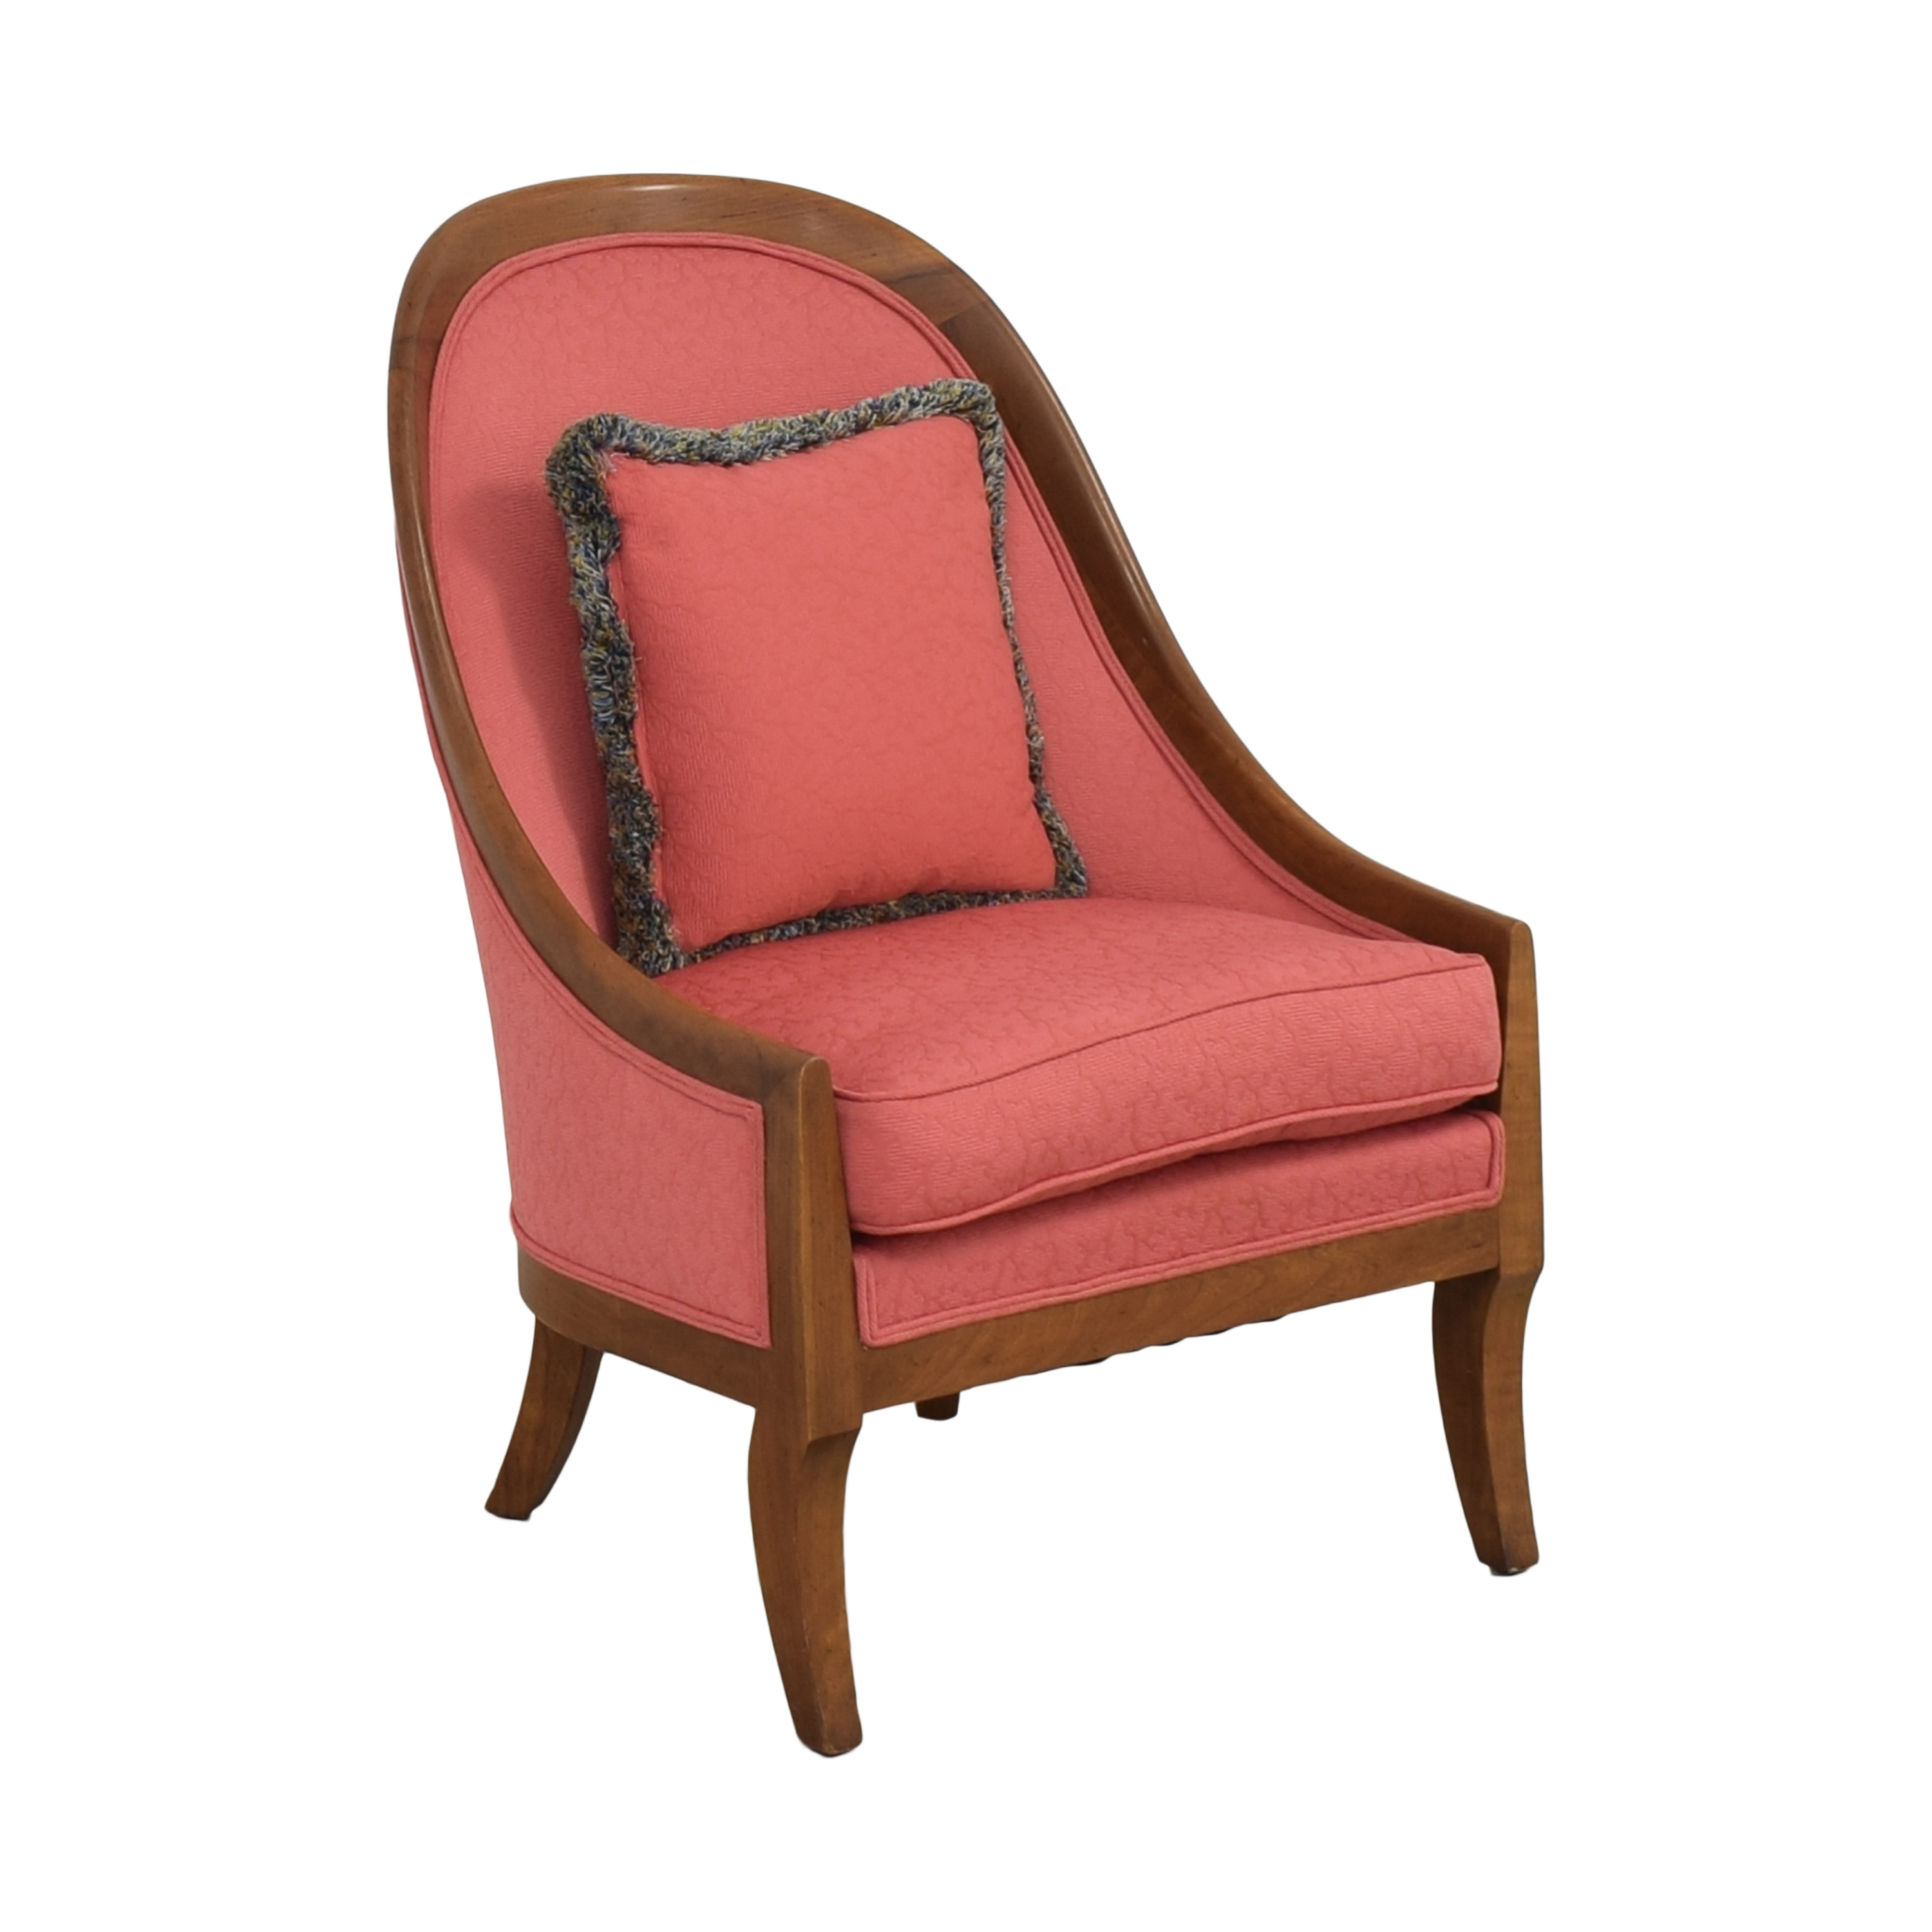 Upholstered Vintage Accent Chair / Chairs